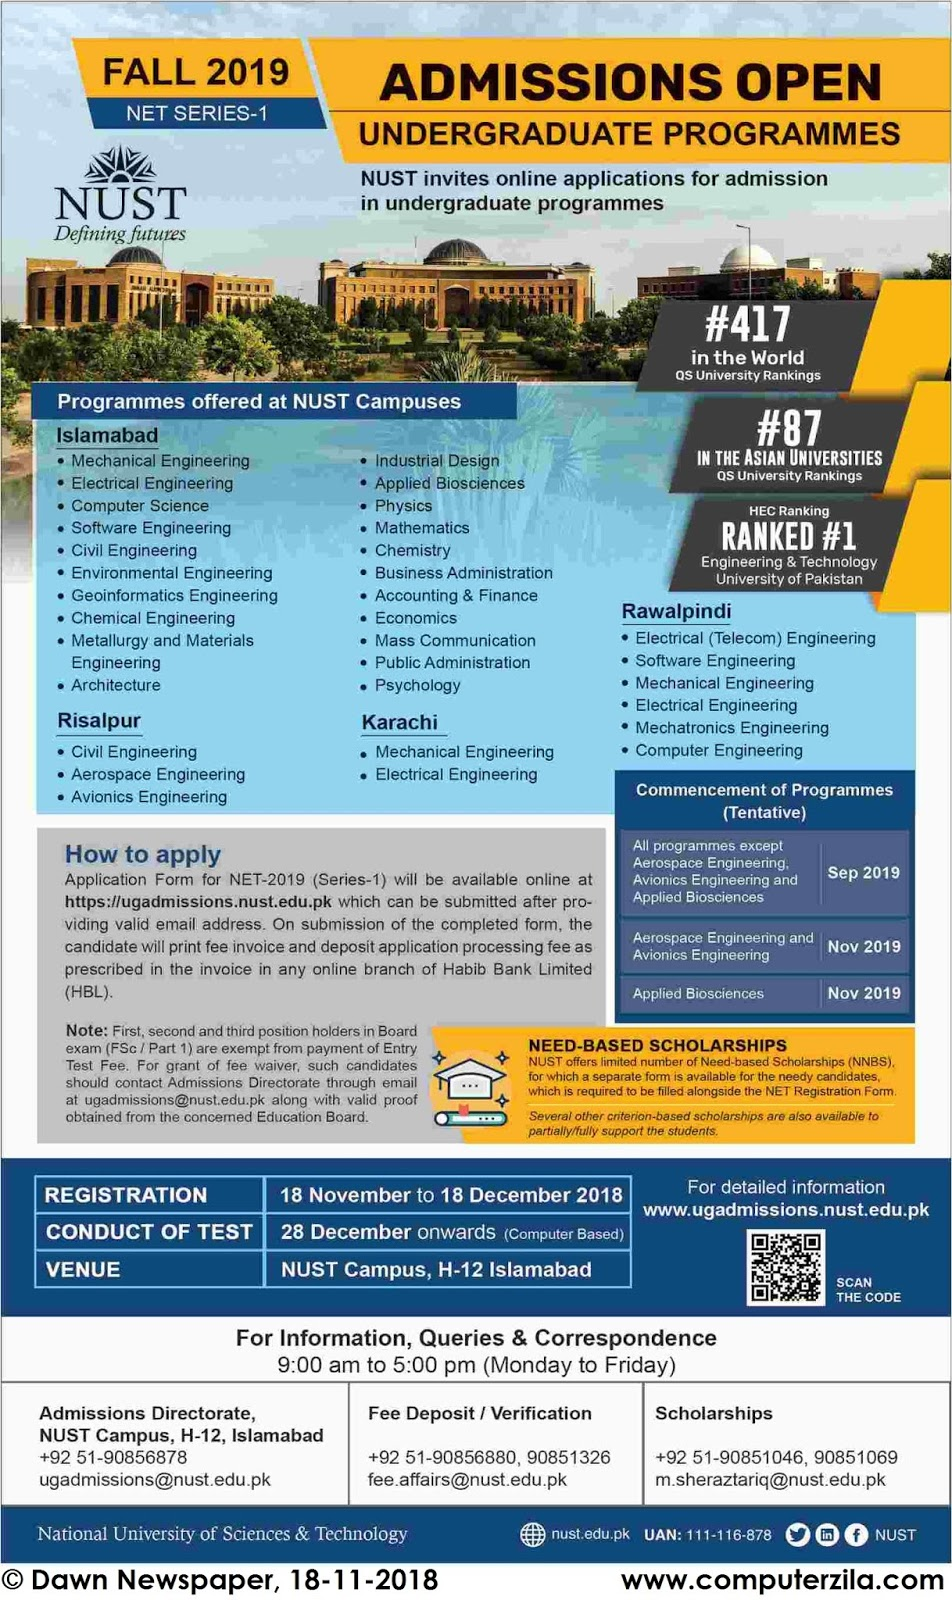 Admissions Open For Fall 2019 At NUST undefined Campus